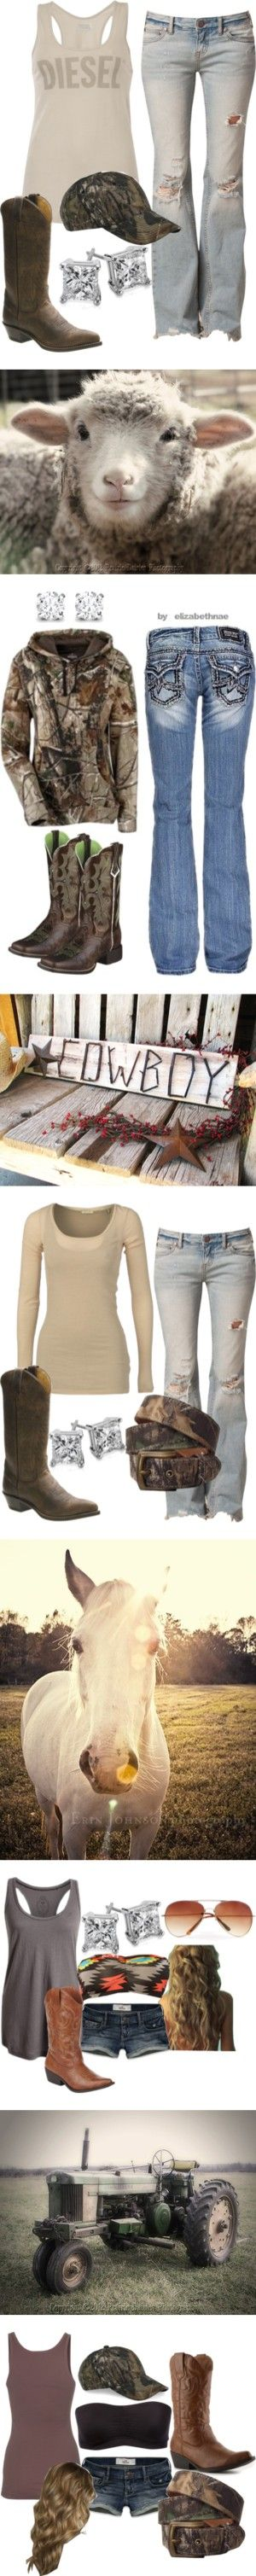 ***ATTENTION*** I am not claiming to be a cowgirl so everyone calm down, I just like these styles!! That is all